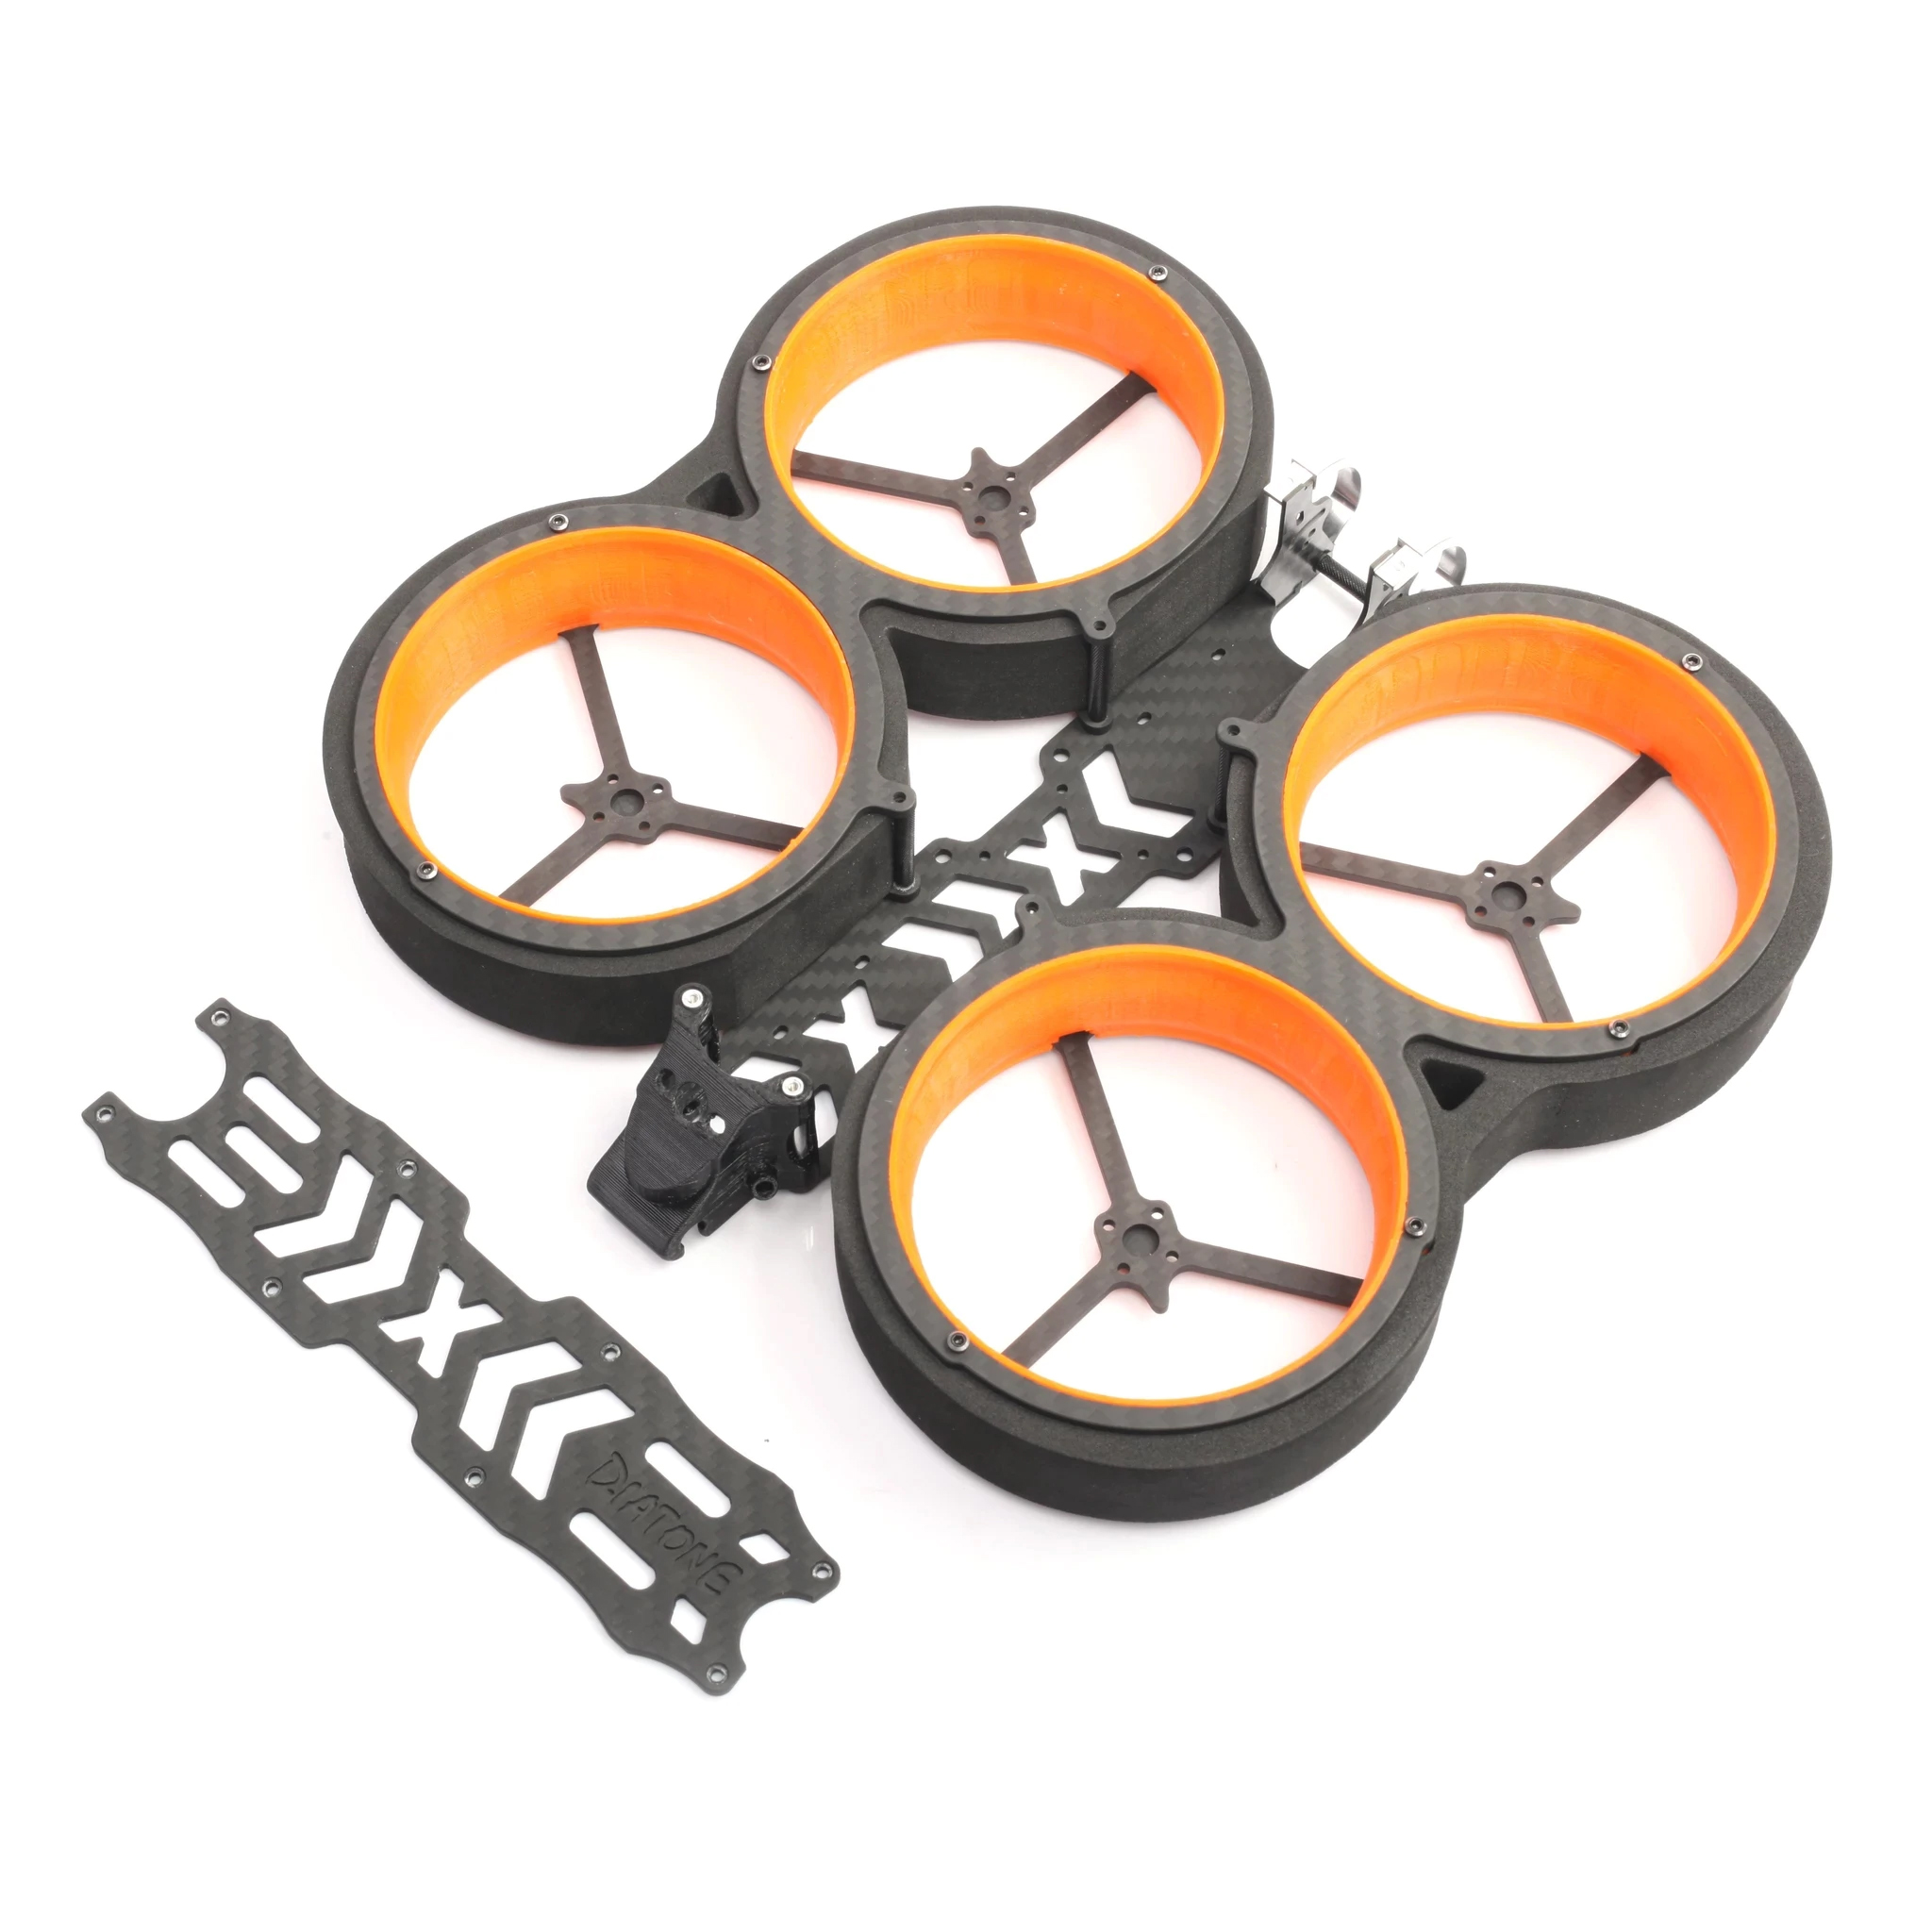 DIATONE TAYCAN MX-C Frame Kit 3 Inch CINEWHOOP – FRAME ONLY